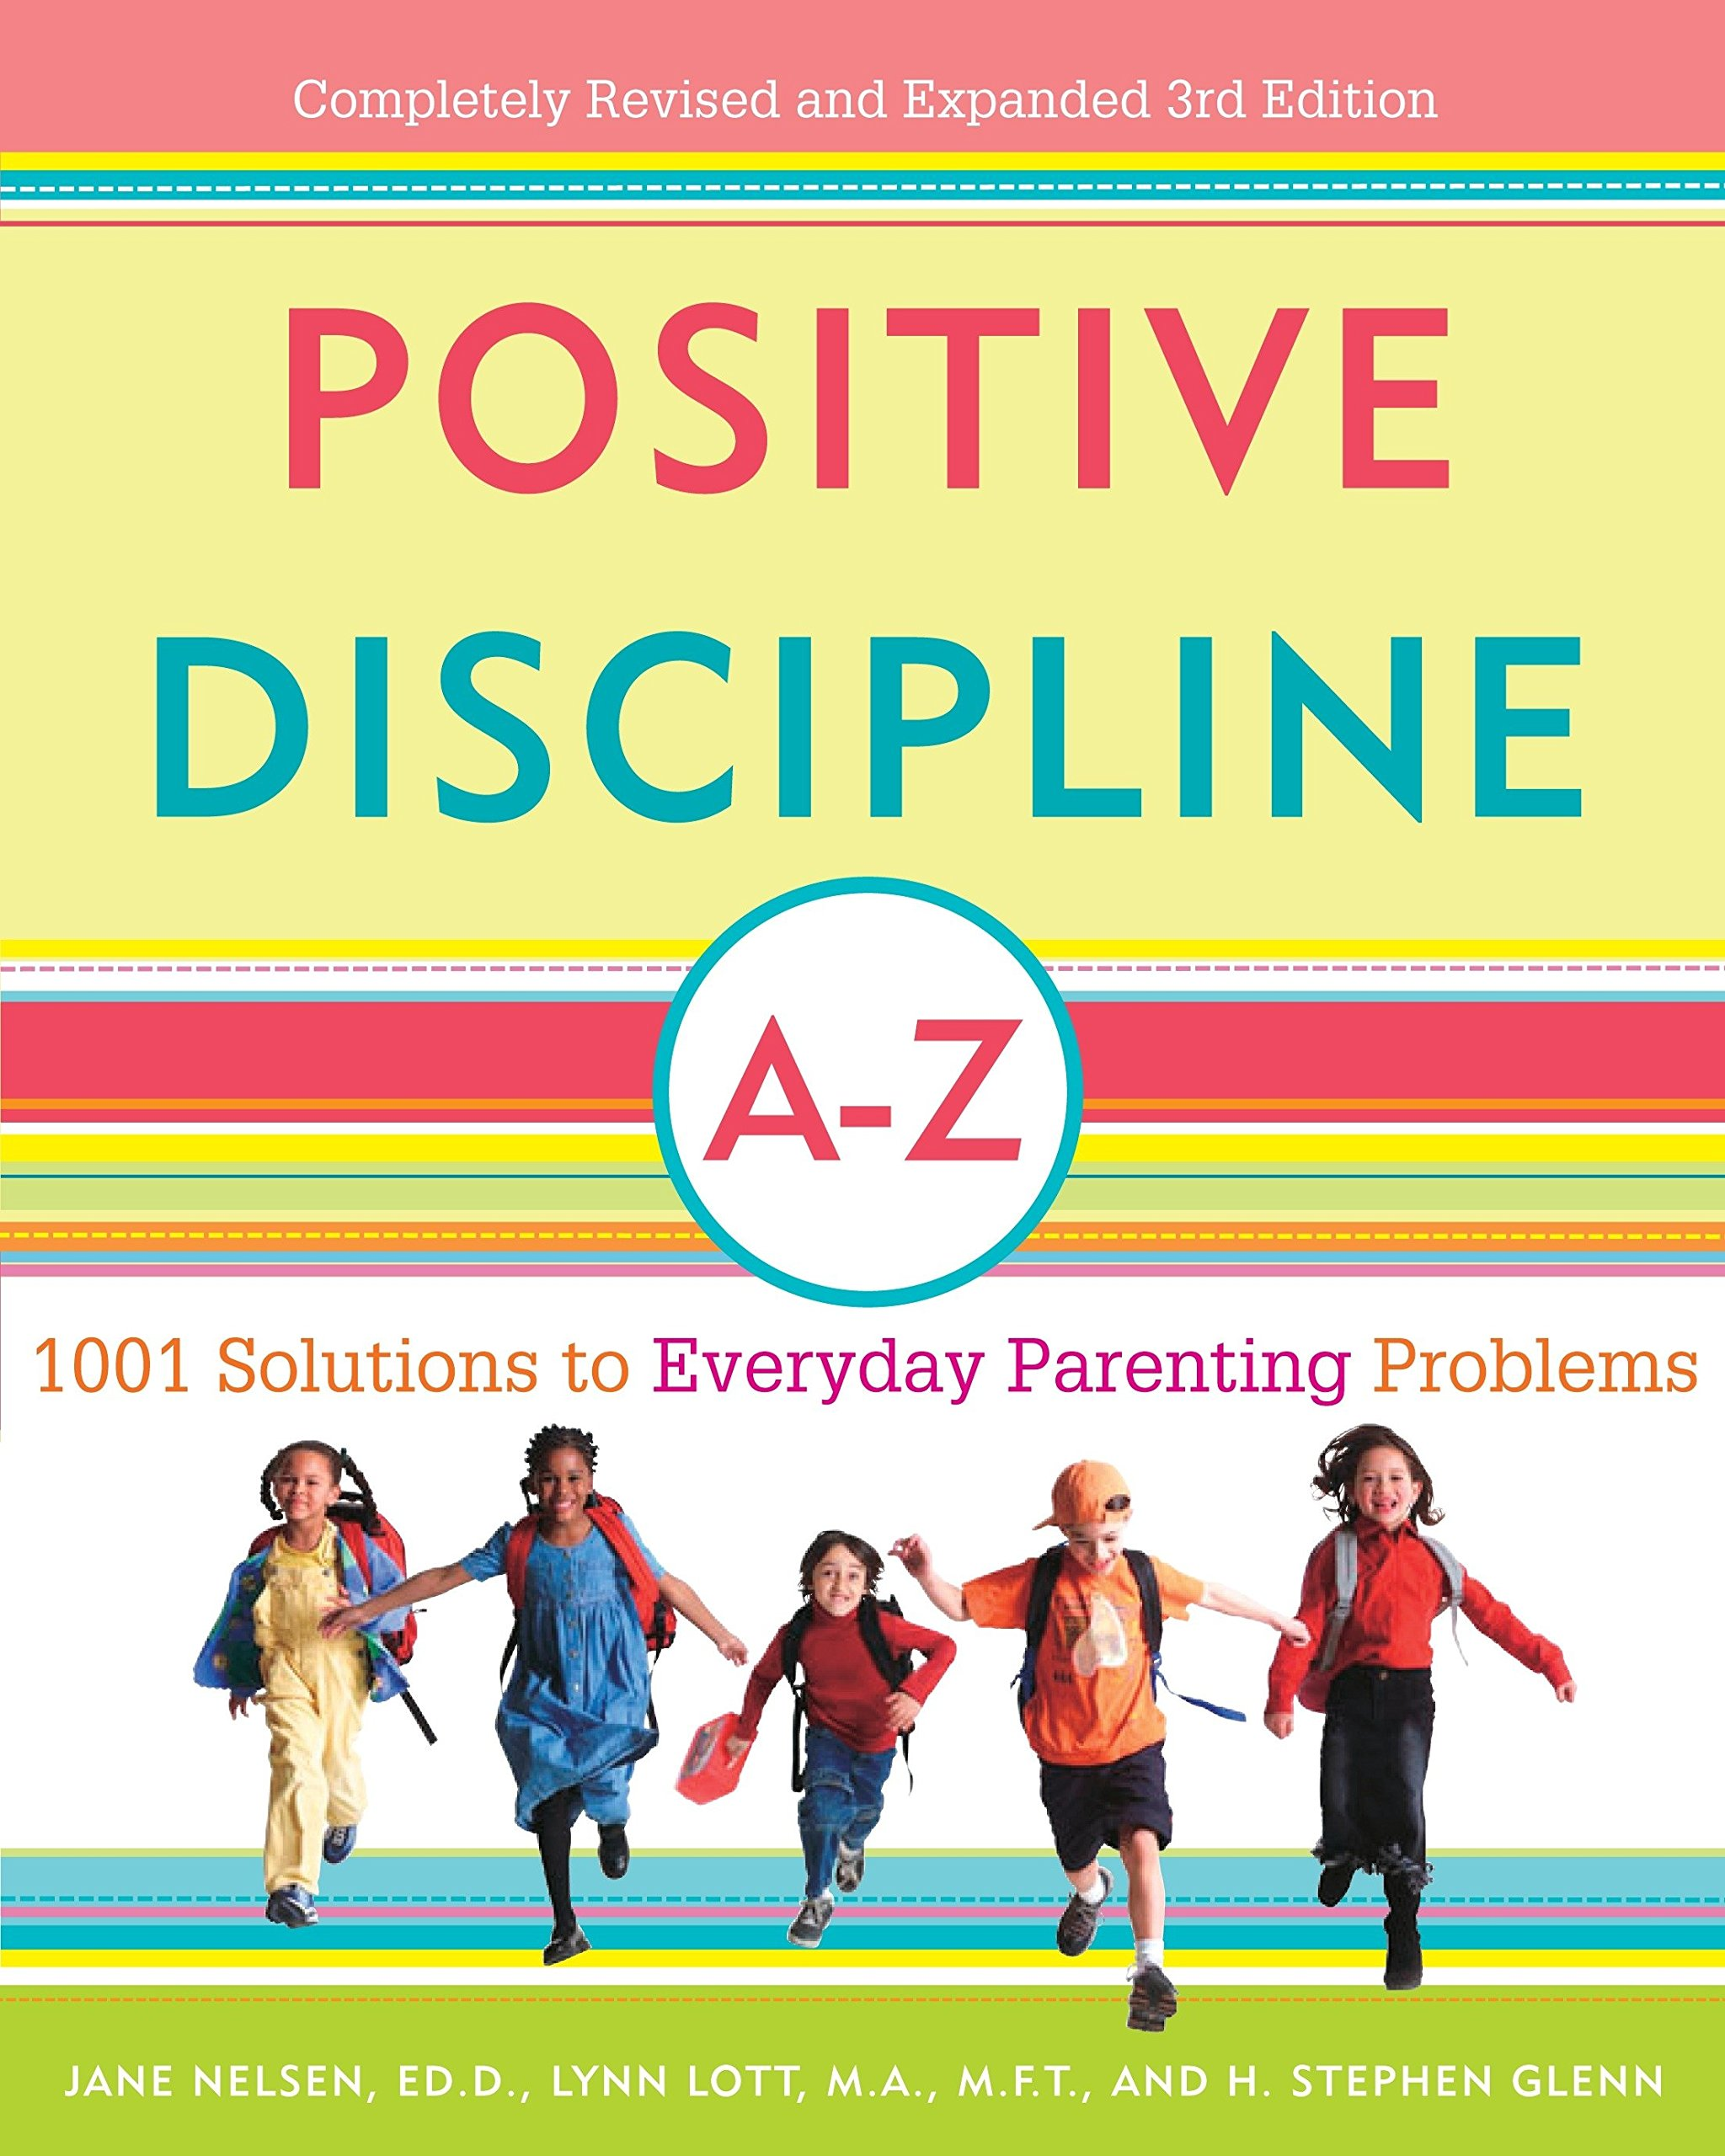 Positive Discipline A Z: 1001 Solutions to Everyday Parenting Problems